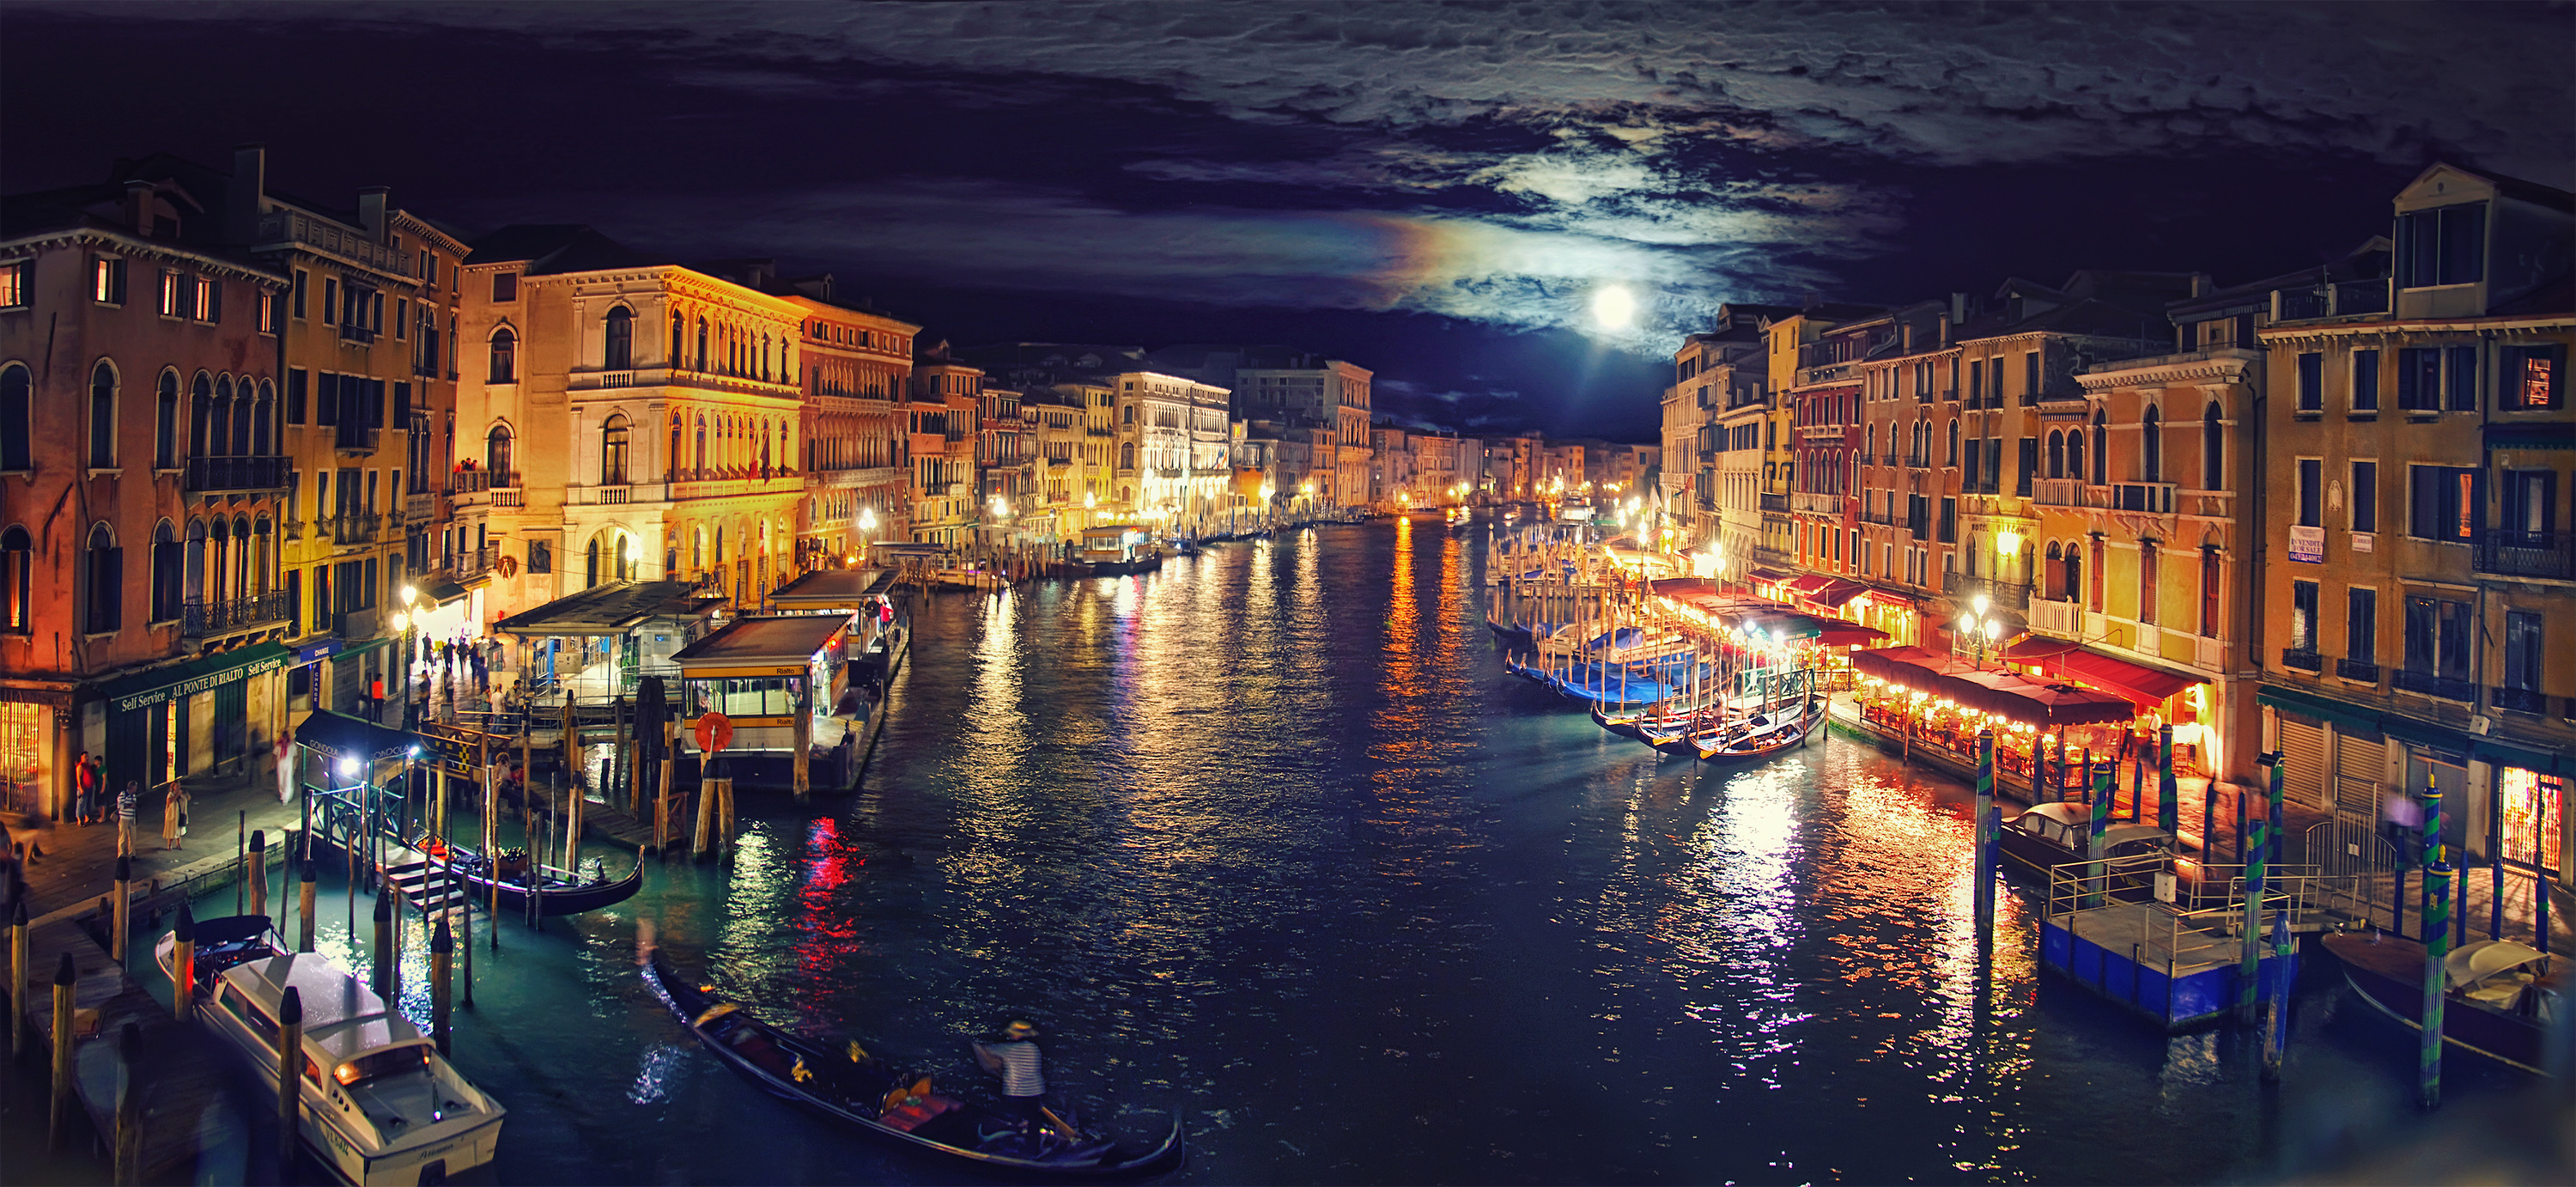 Grand Canal Venice Wallpaper Italy Venice Grand Canal Night